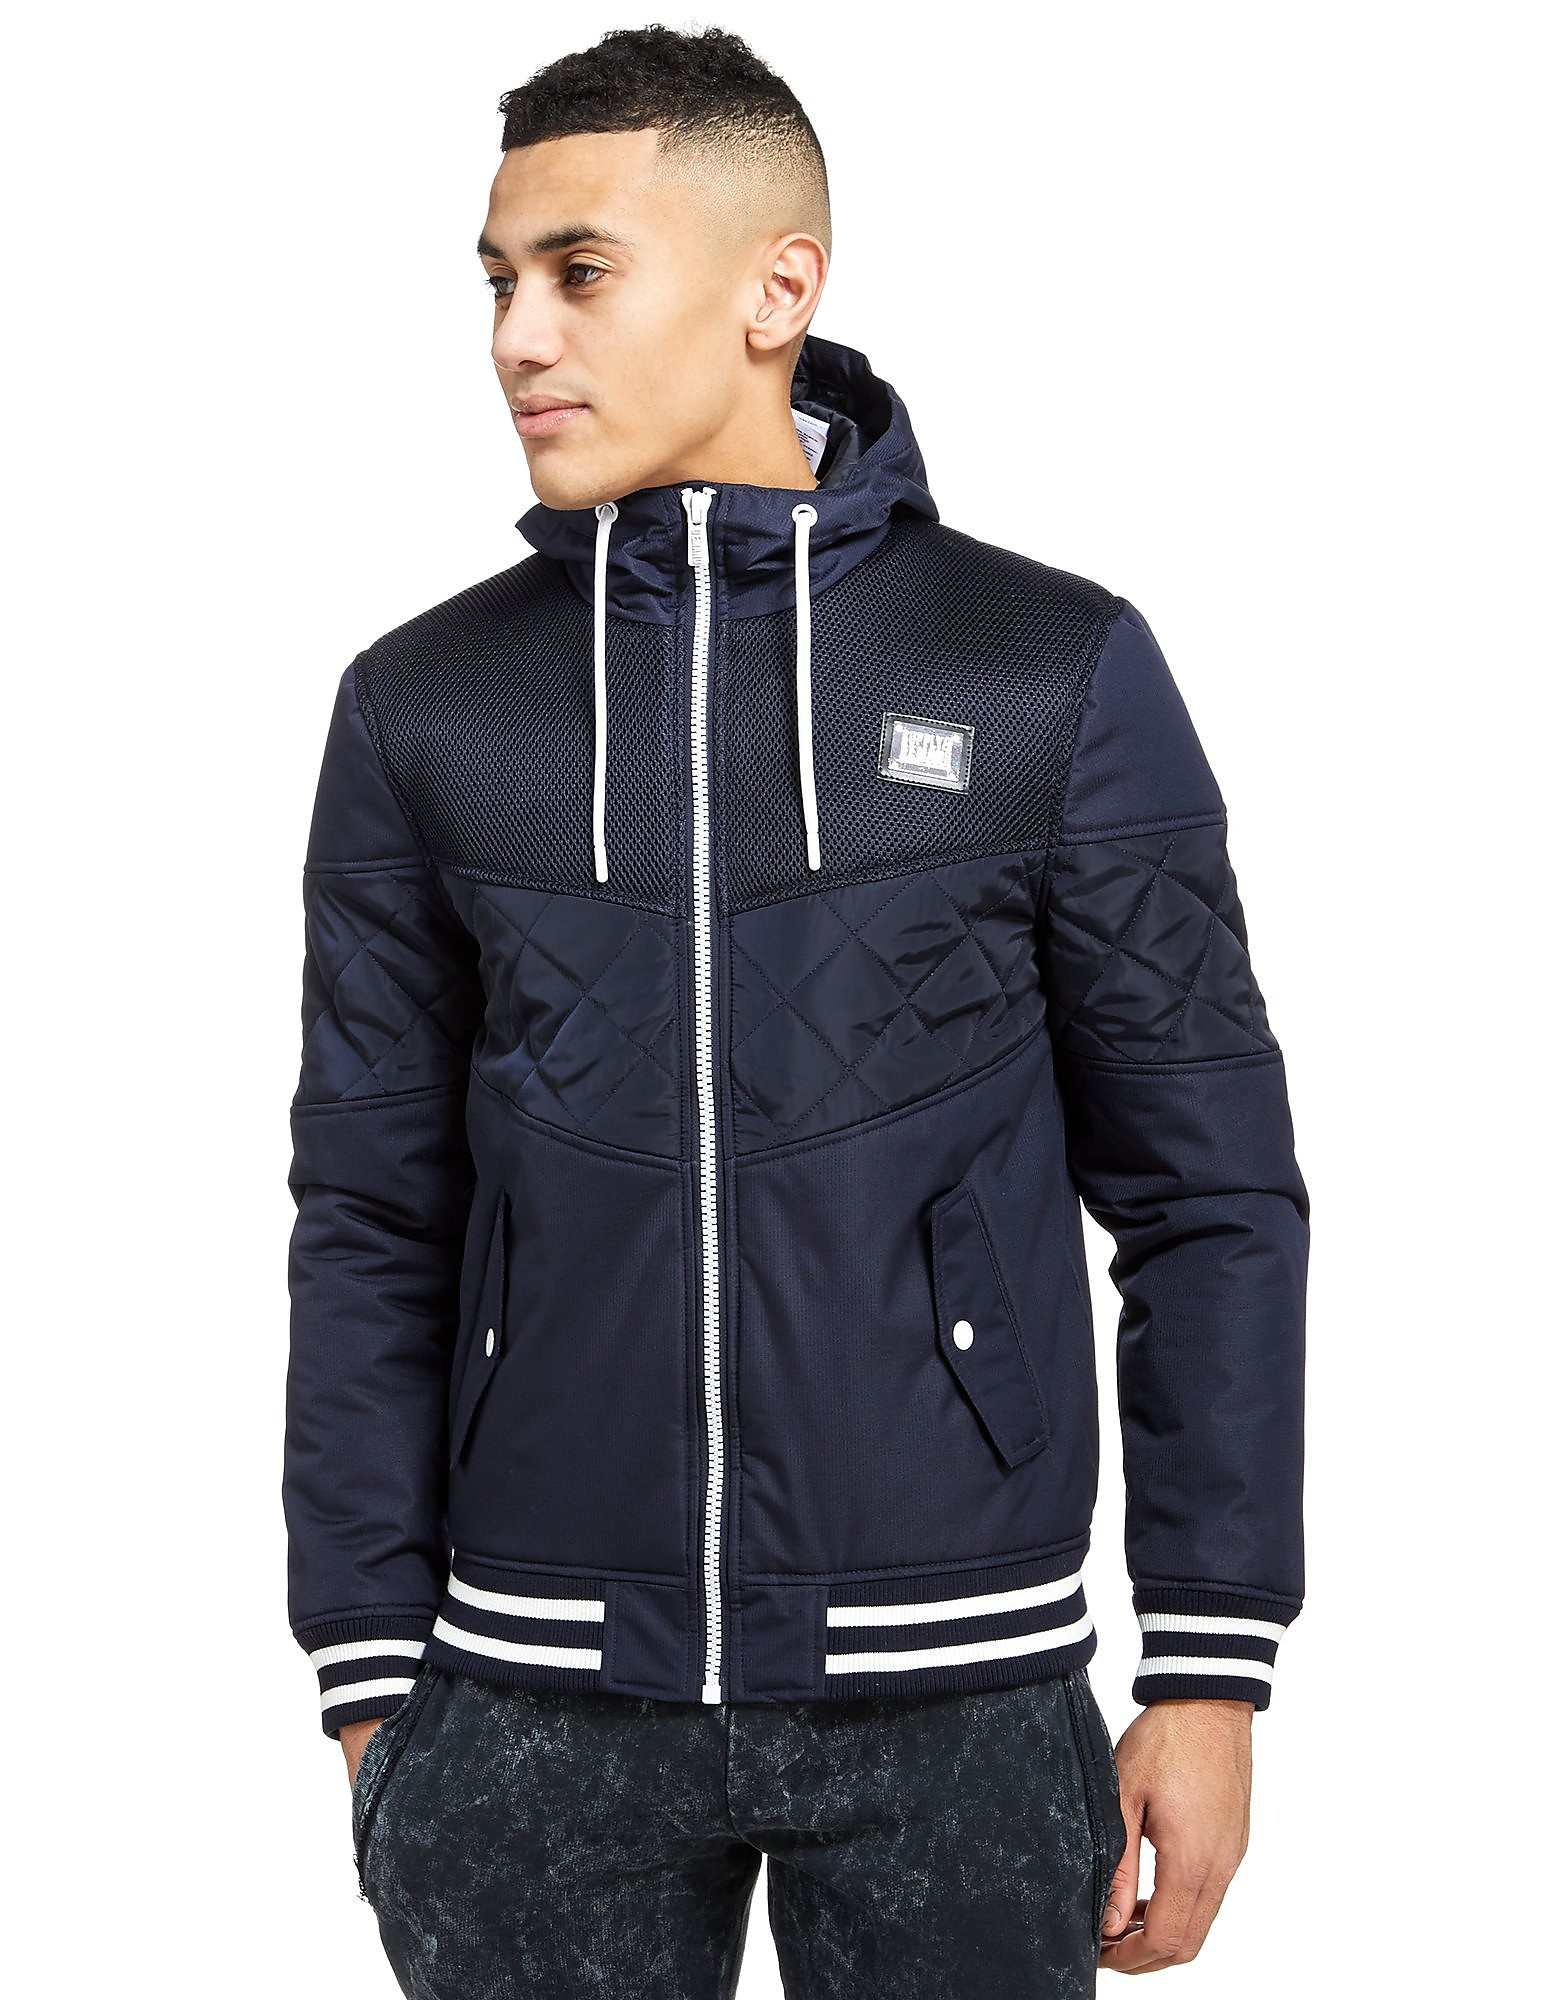 Supply & Demand Zayden Jacket